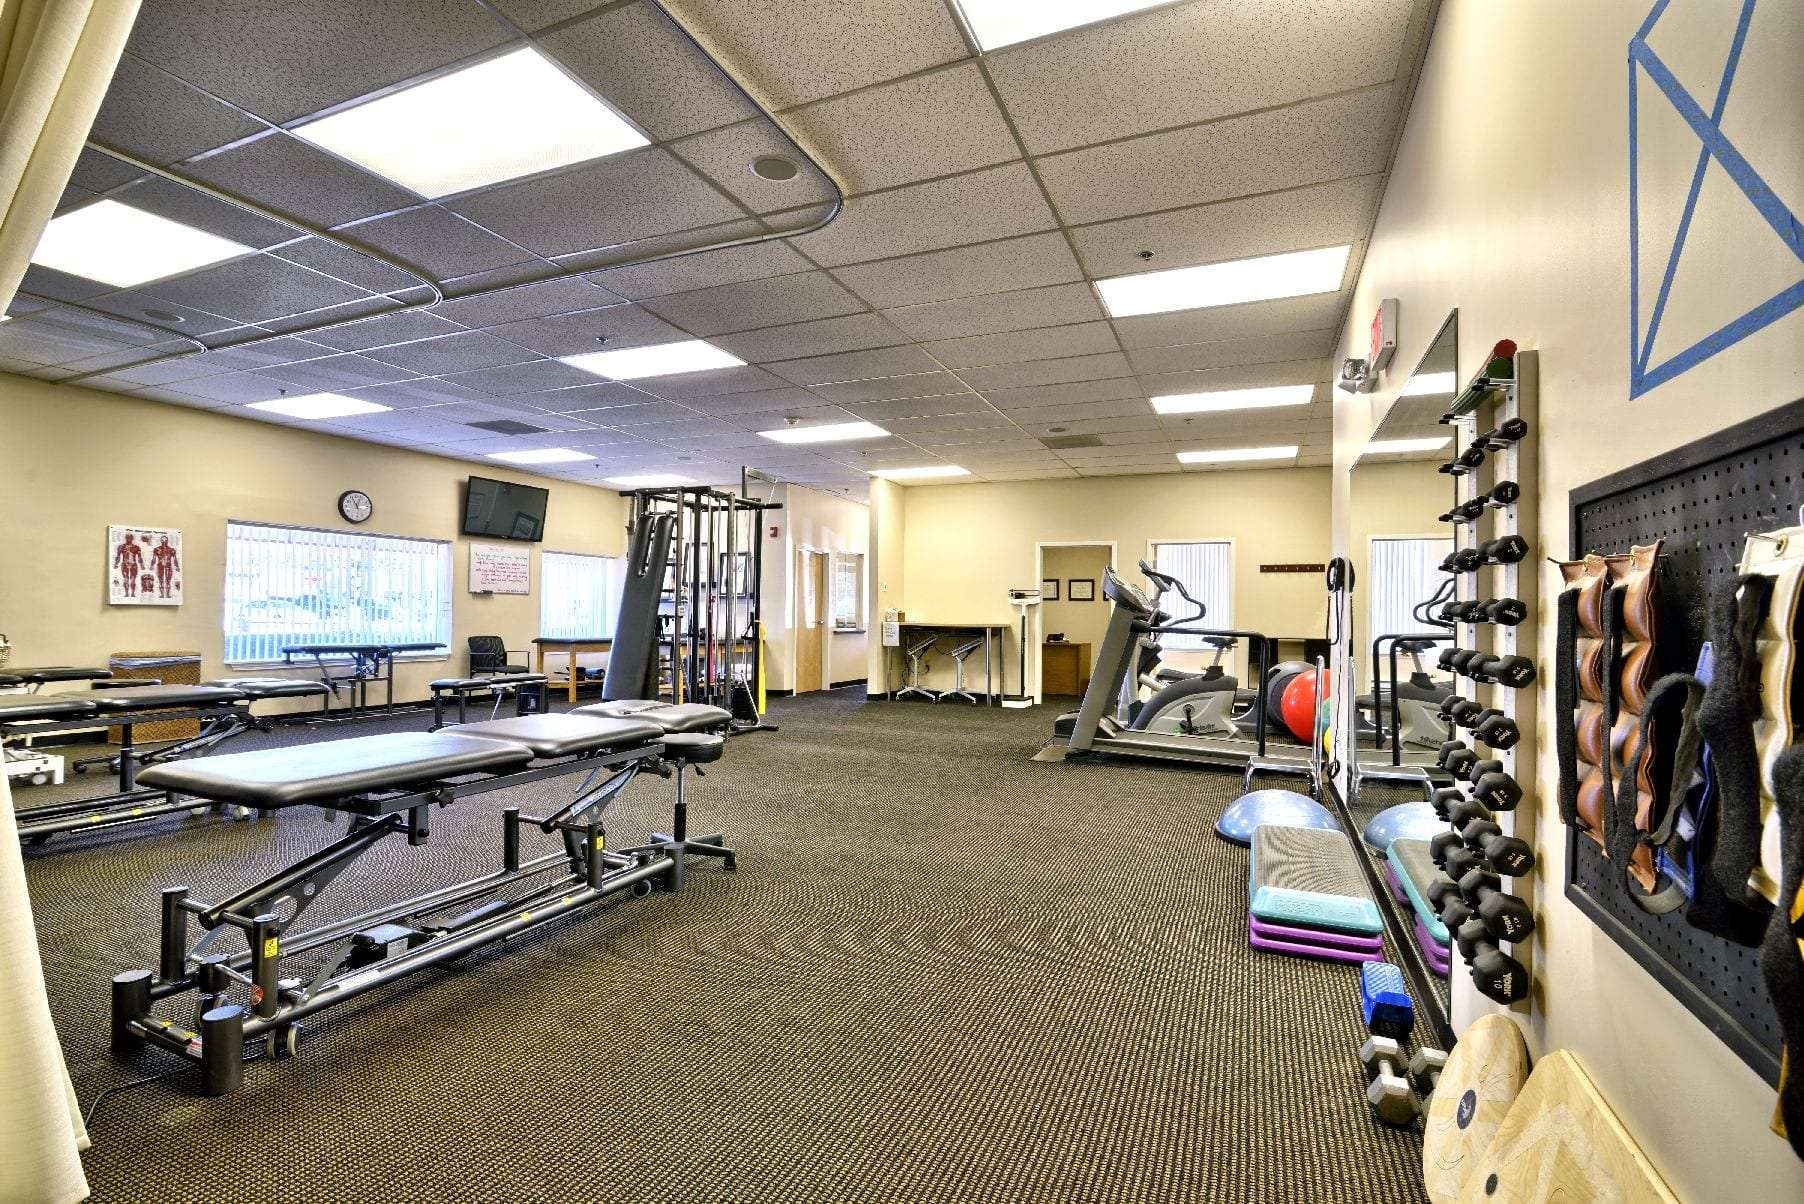 An image of the exercise equipment at our physical therapy clinic in Middleton, Massachusetts.